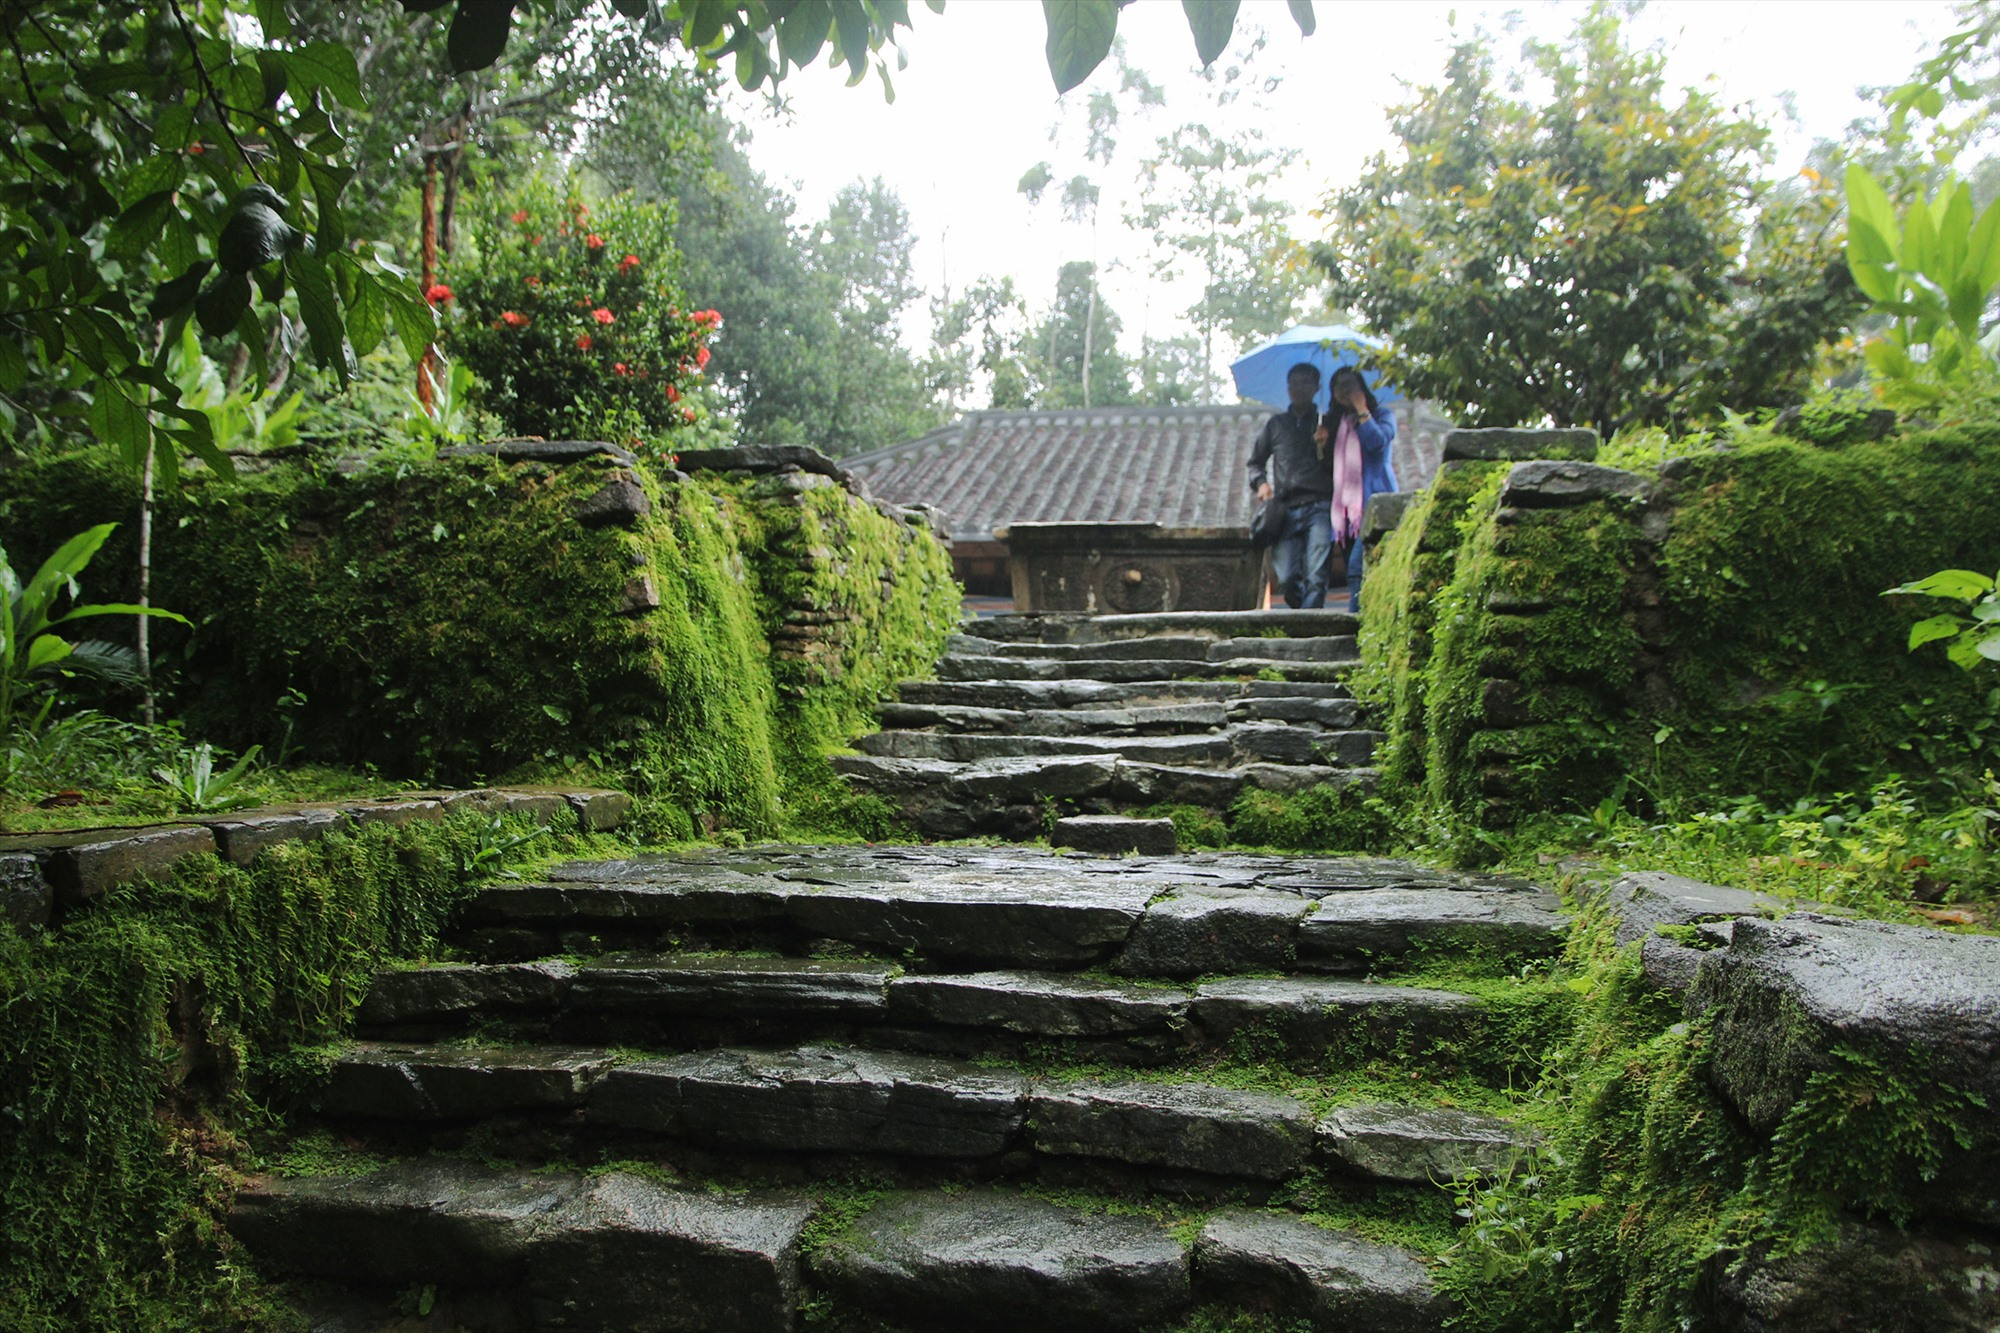 A mossy stone alley leading to an ancient house